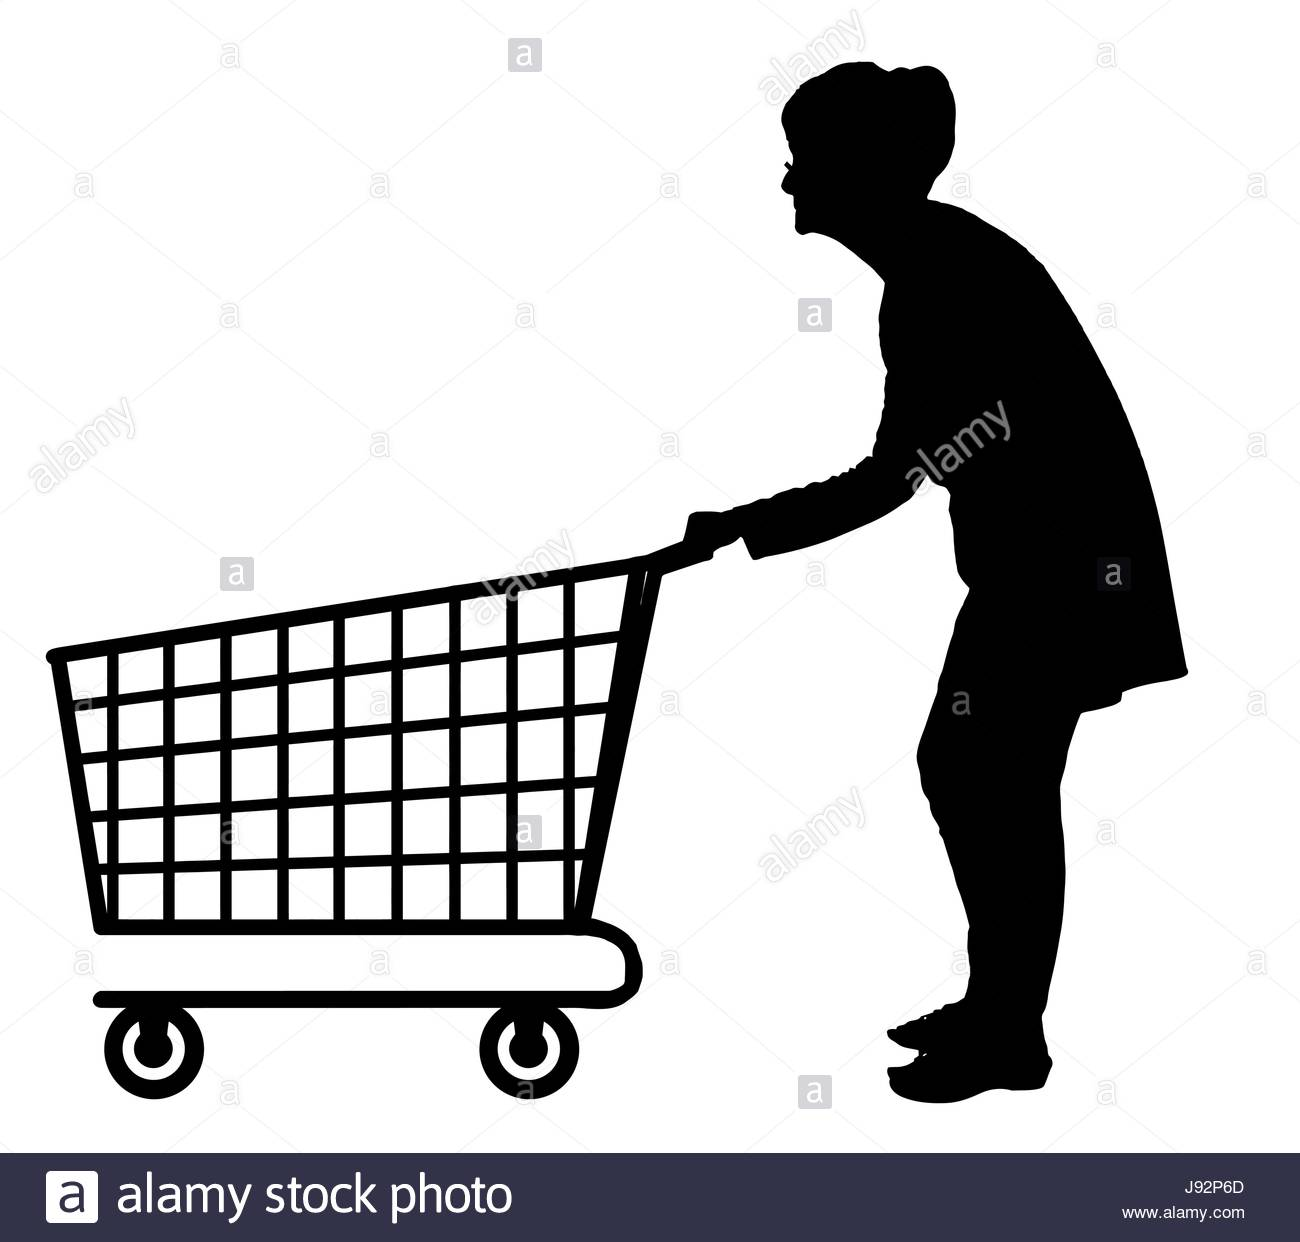 1300x1242 Silhouette Of An Elderly Woman Pushing Empty Shopping Trolley